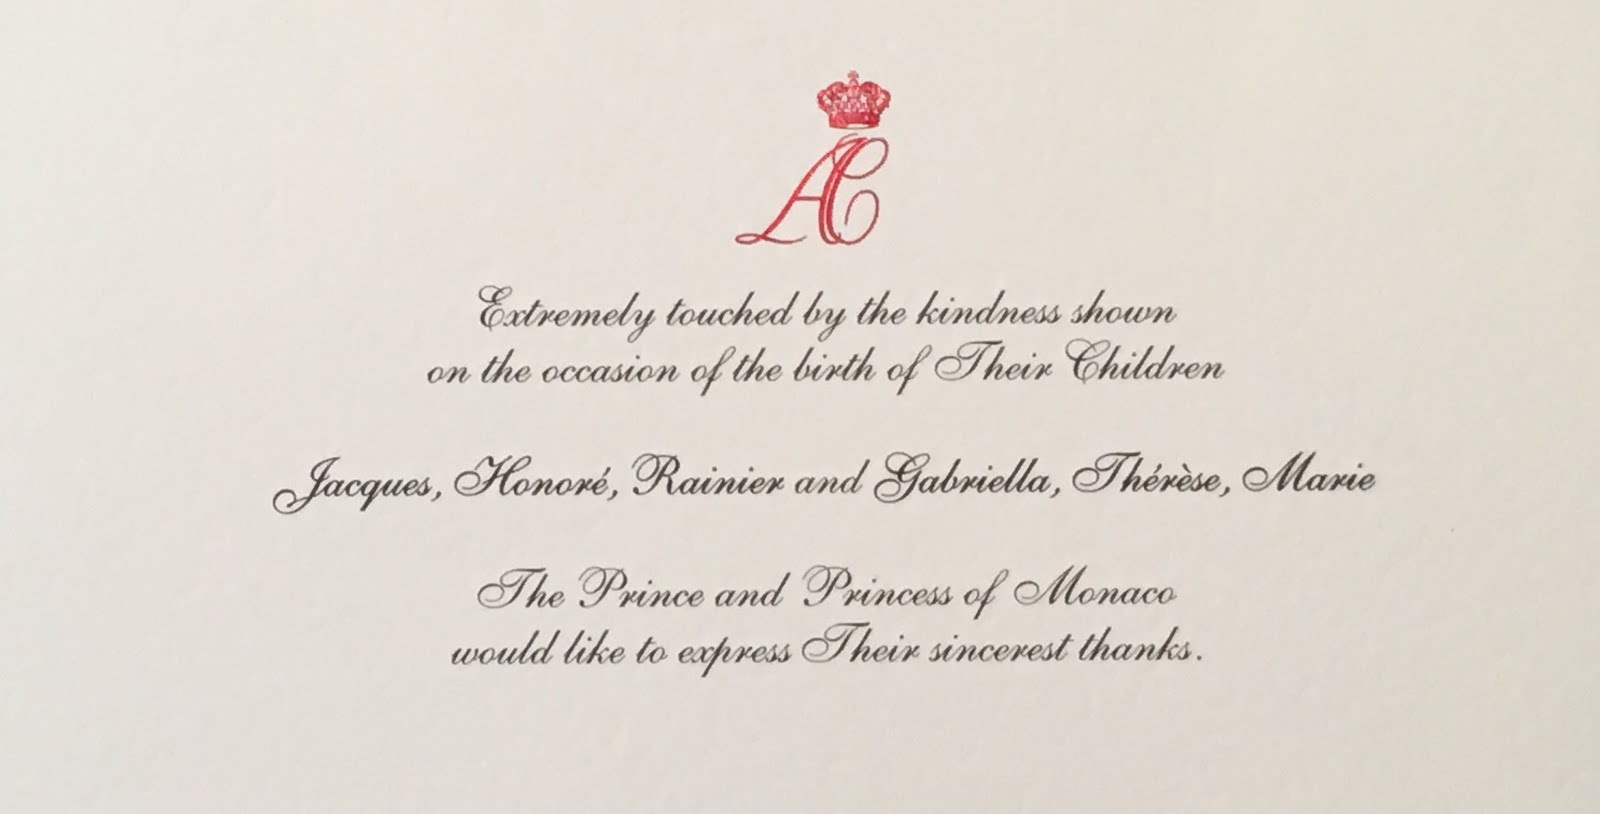 Gerts royals thank you note from monaco for birth of twins 2014 sent a christmas card in response to the same letter the envelope is textured and really nice quality the note is written in both french and english expocarfo Gallery